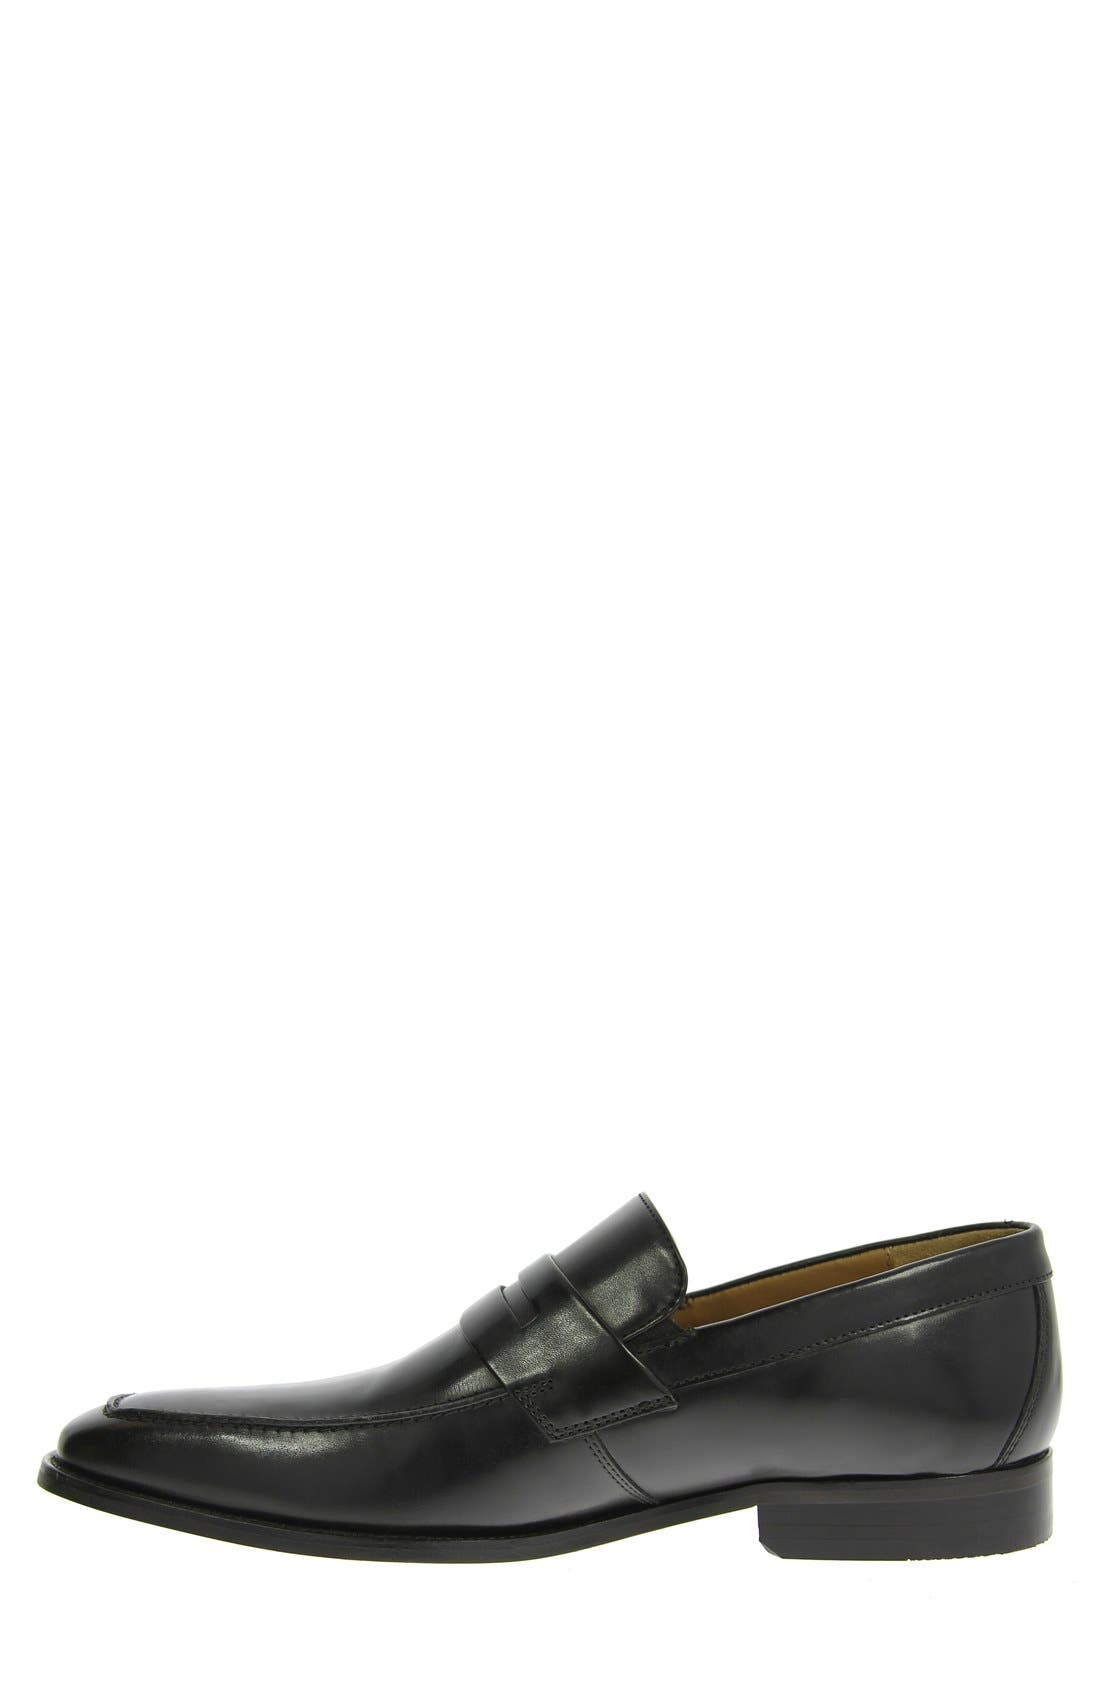 'Sabato' Penny Loafer,                             Alternate thumbnail 11, color,